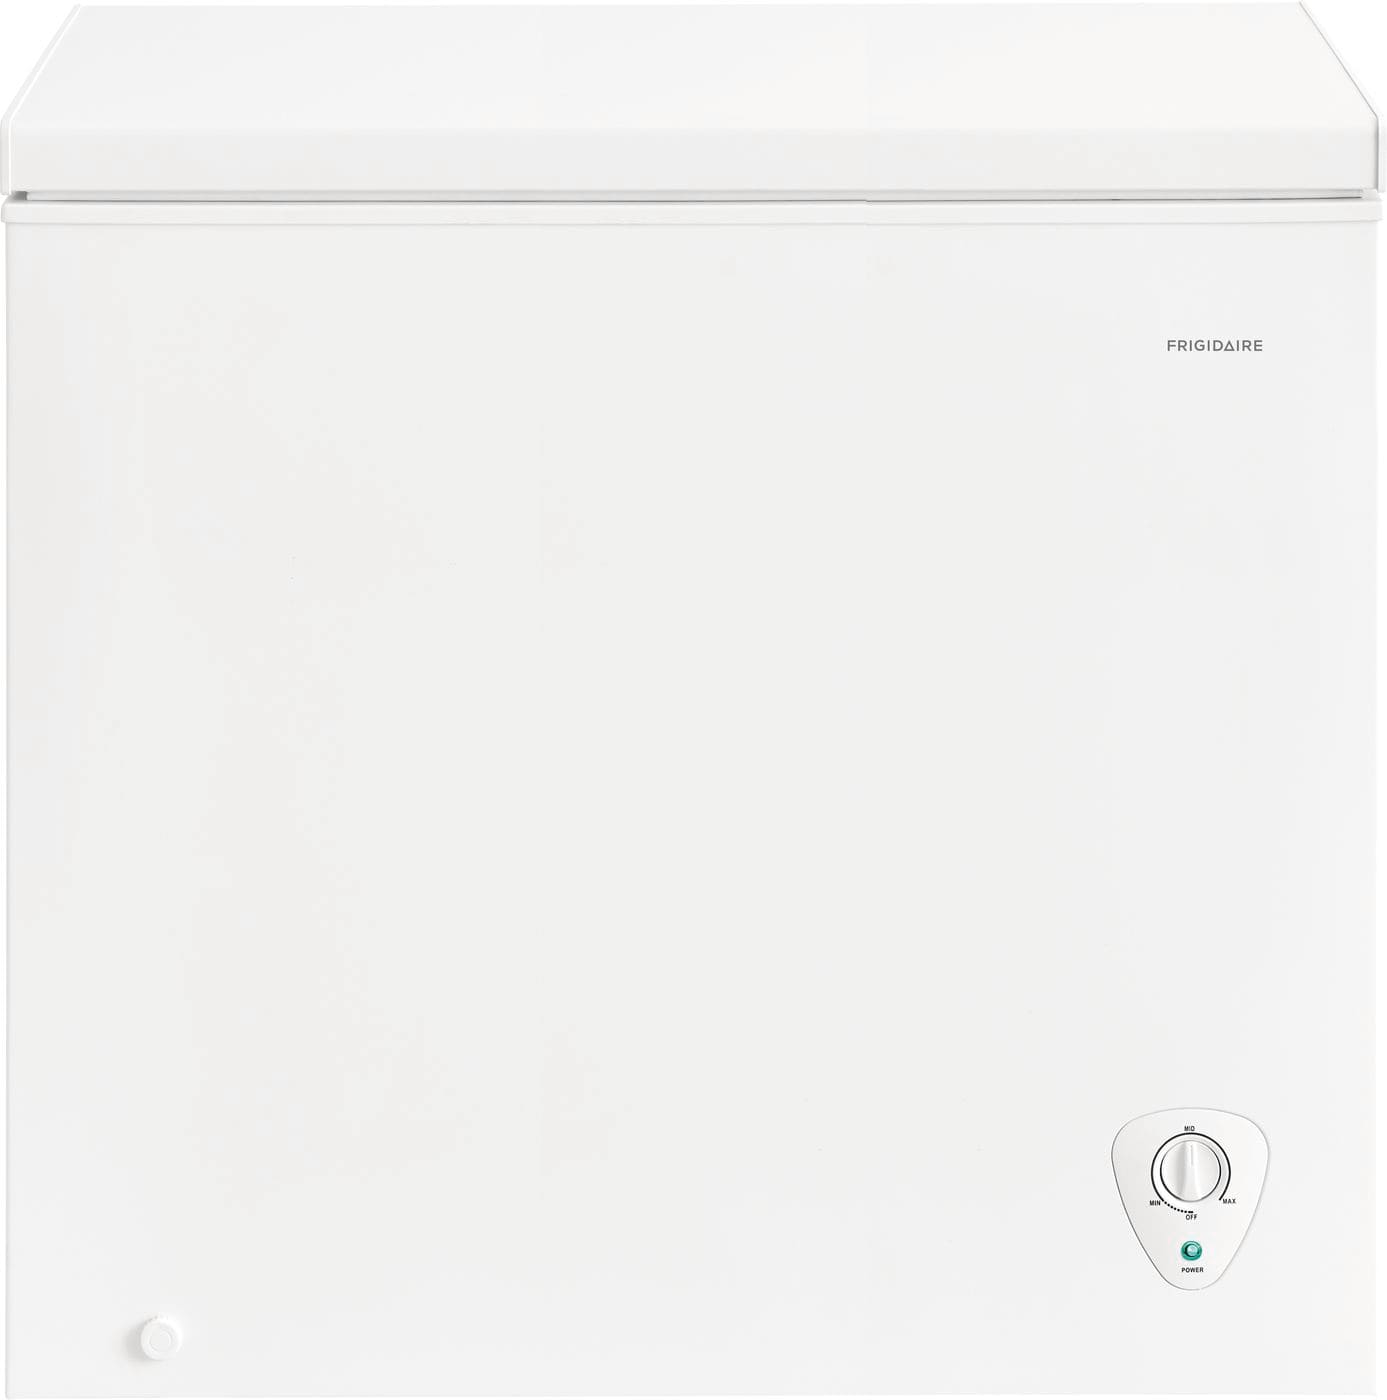 Frigidaire 7.2 Cu. Ft. Chest Freezer Manual Defrost